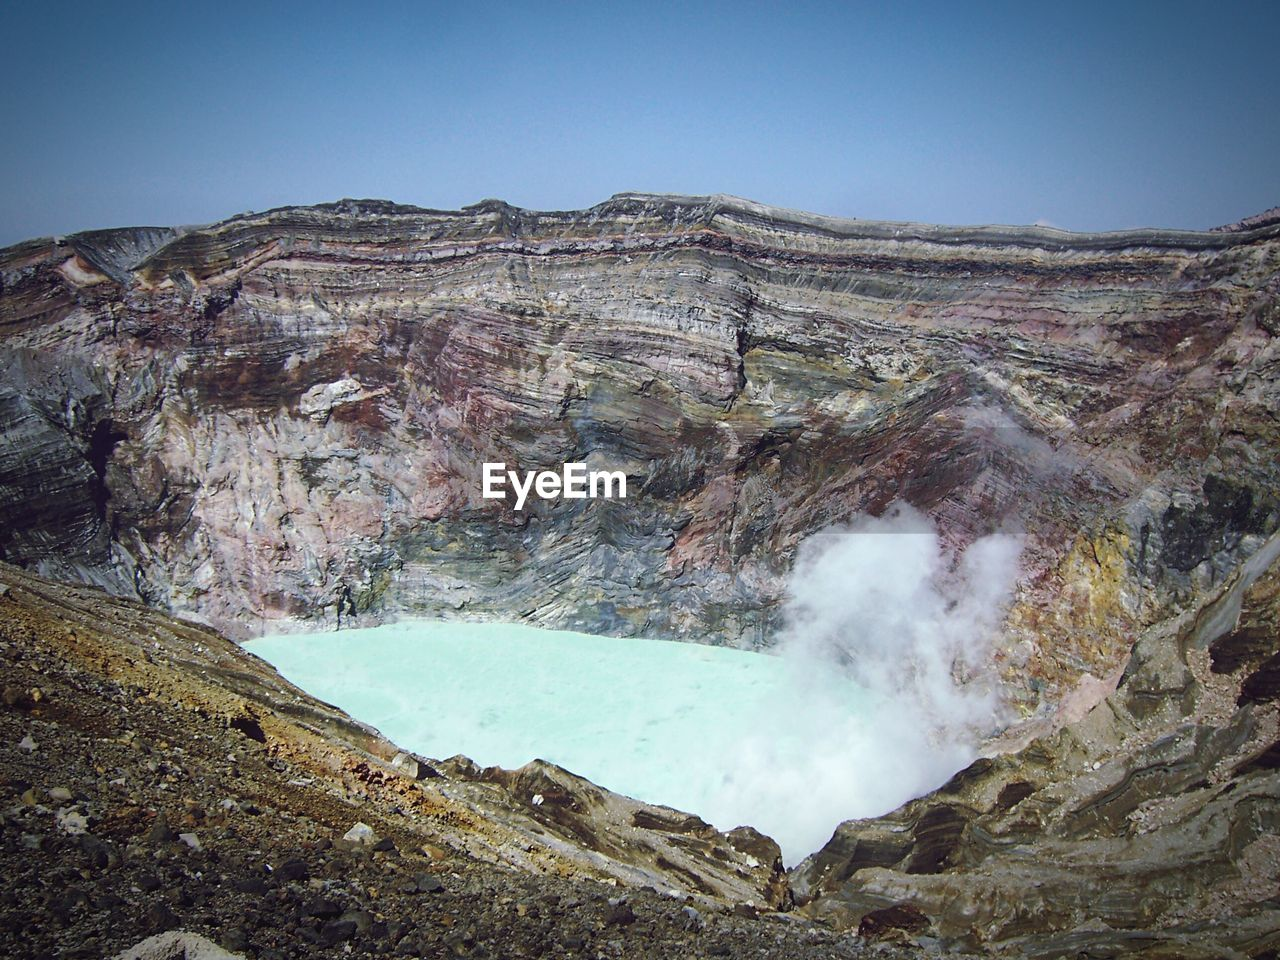 High Angle Shot Of Hot Spring Amid Rocky Landscape